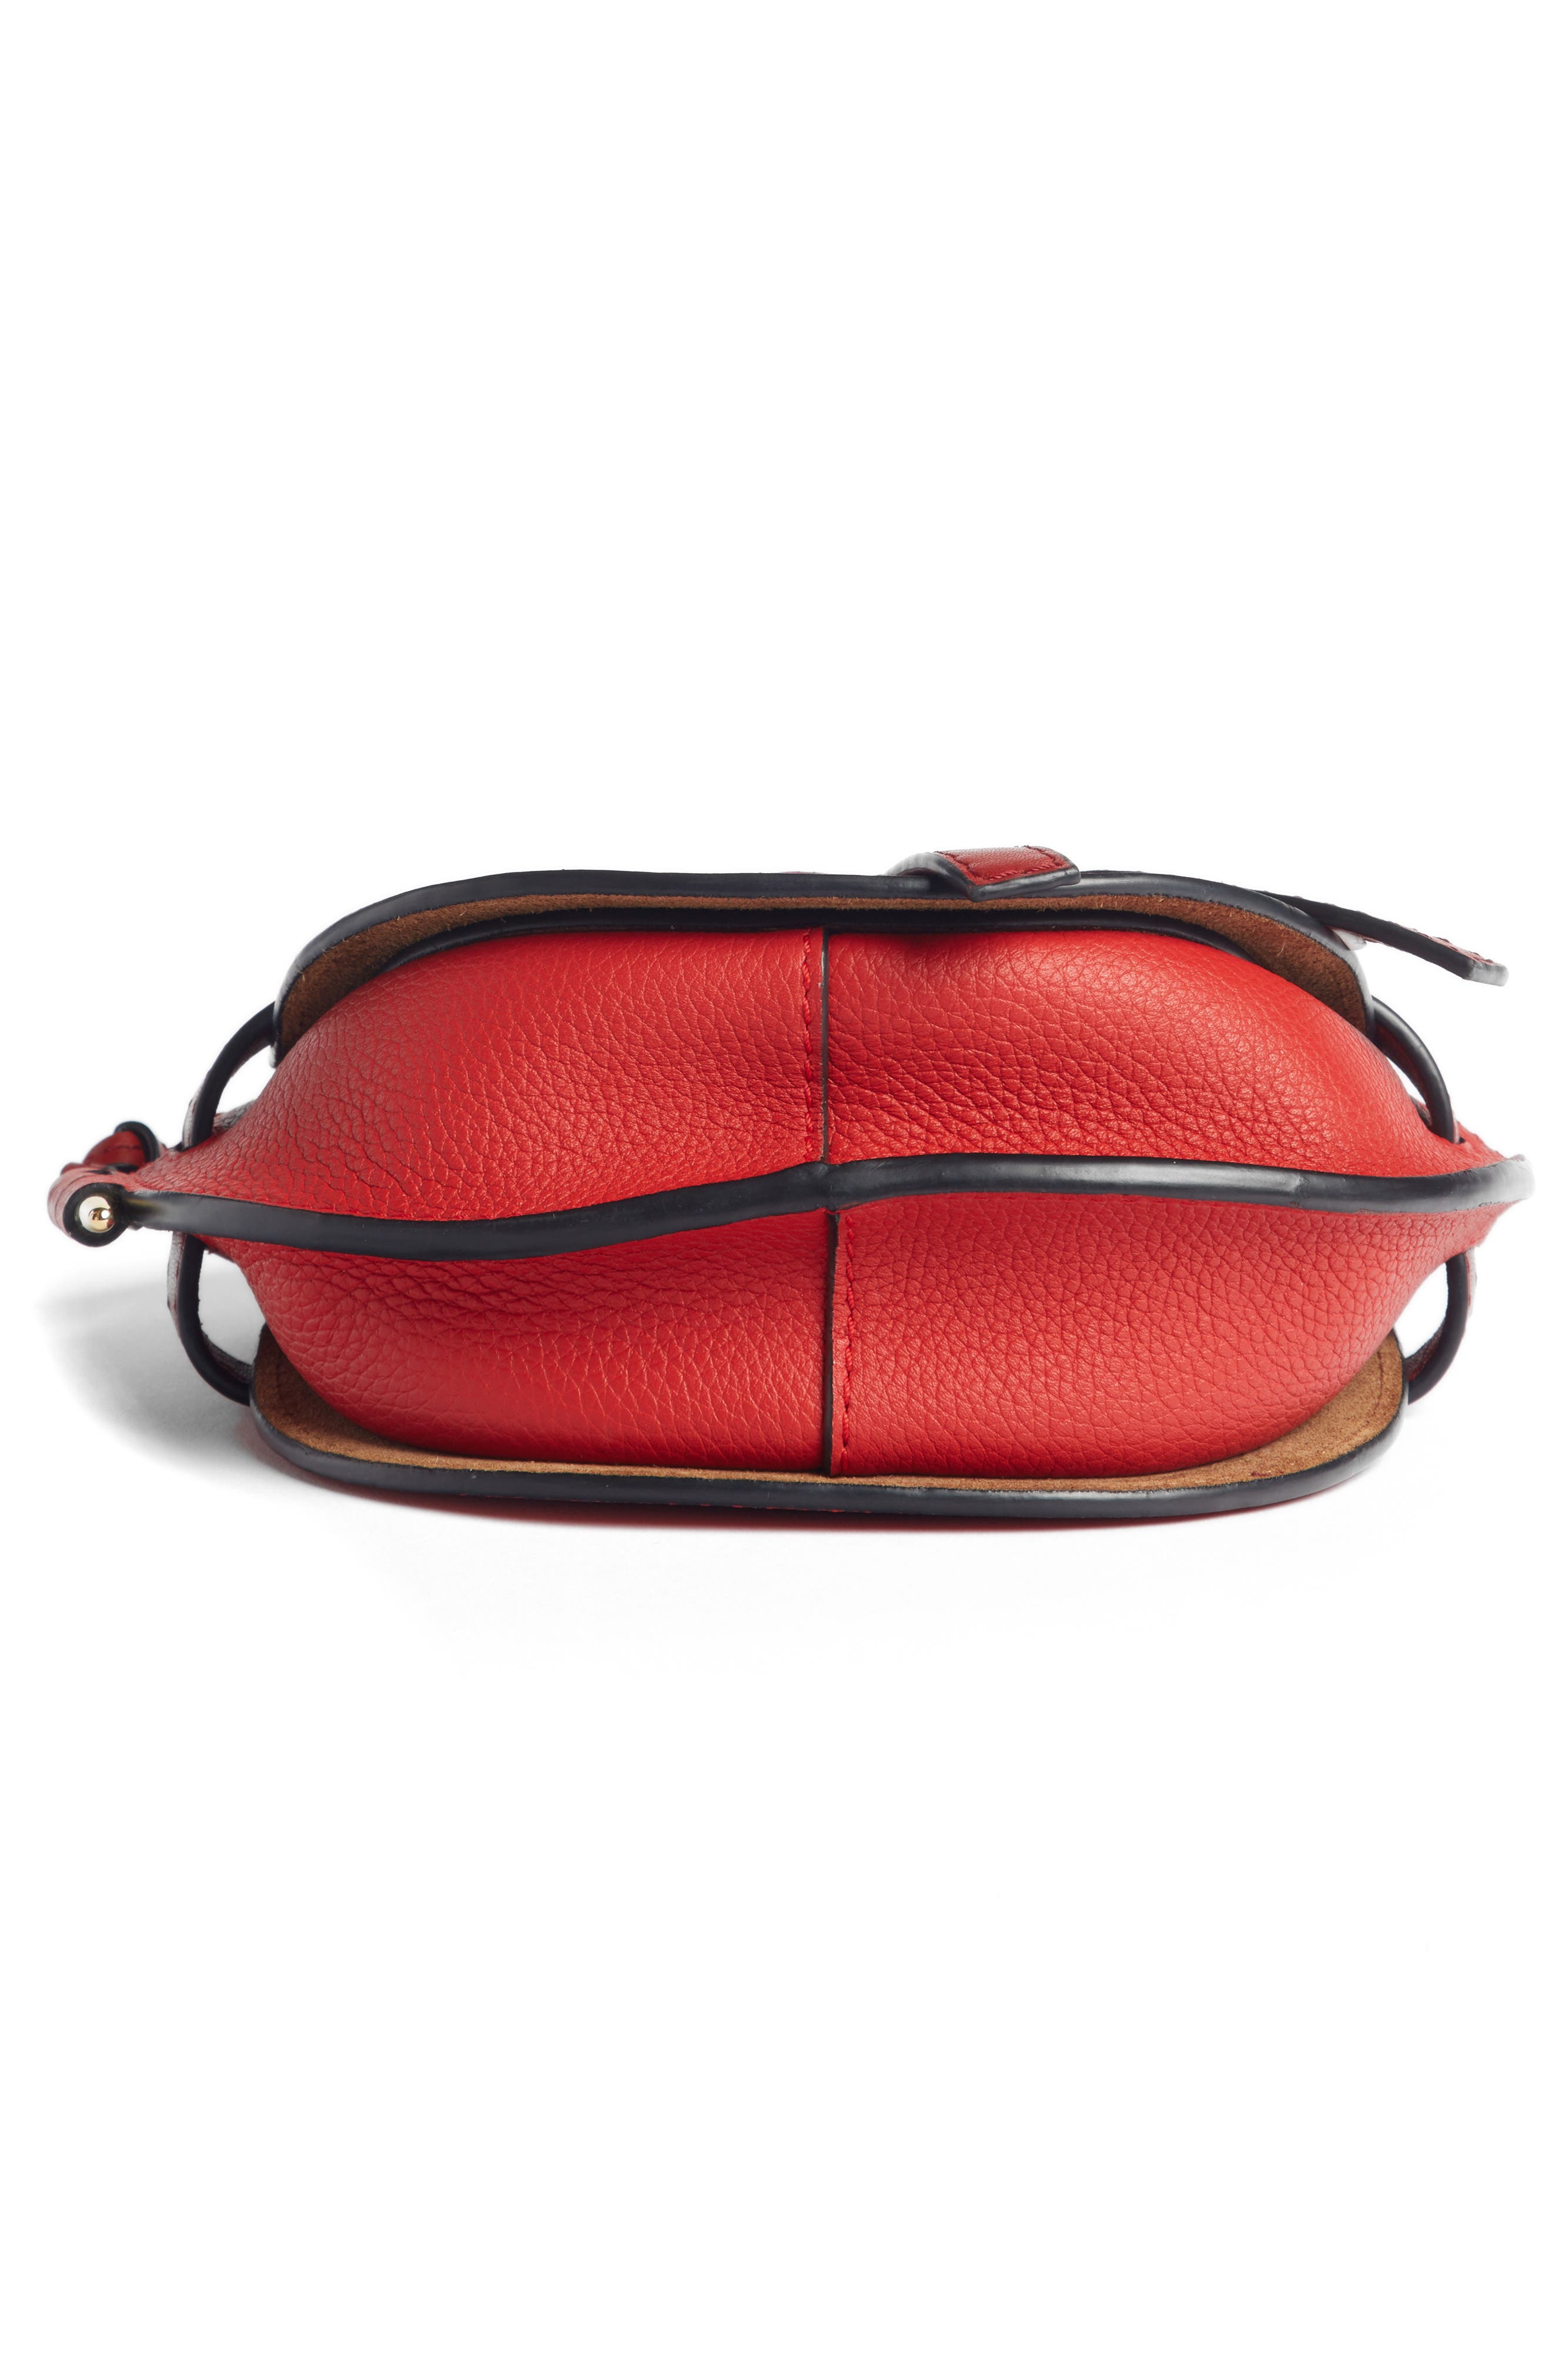 Small Gate Leather Crossbody Bag,                             Alternate thumbnail 5, color,                             SCARLET RED/ BURNT RED